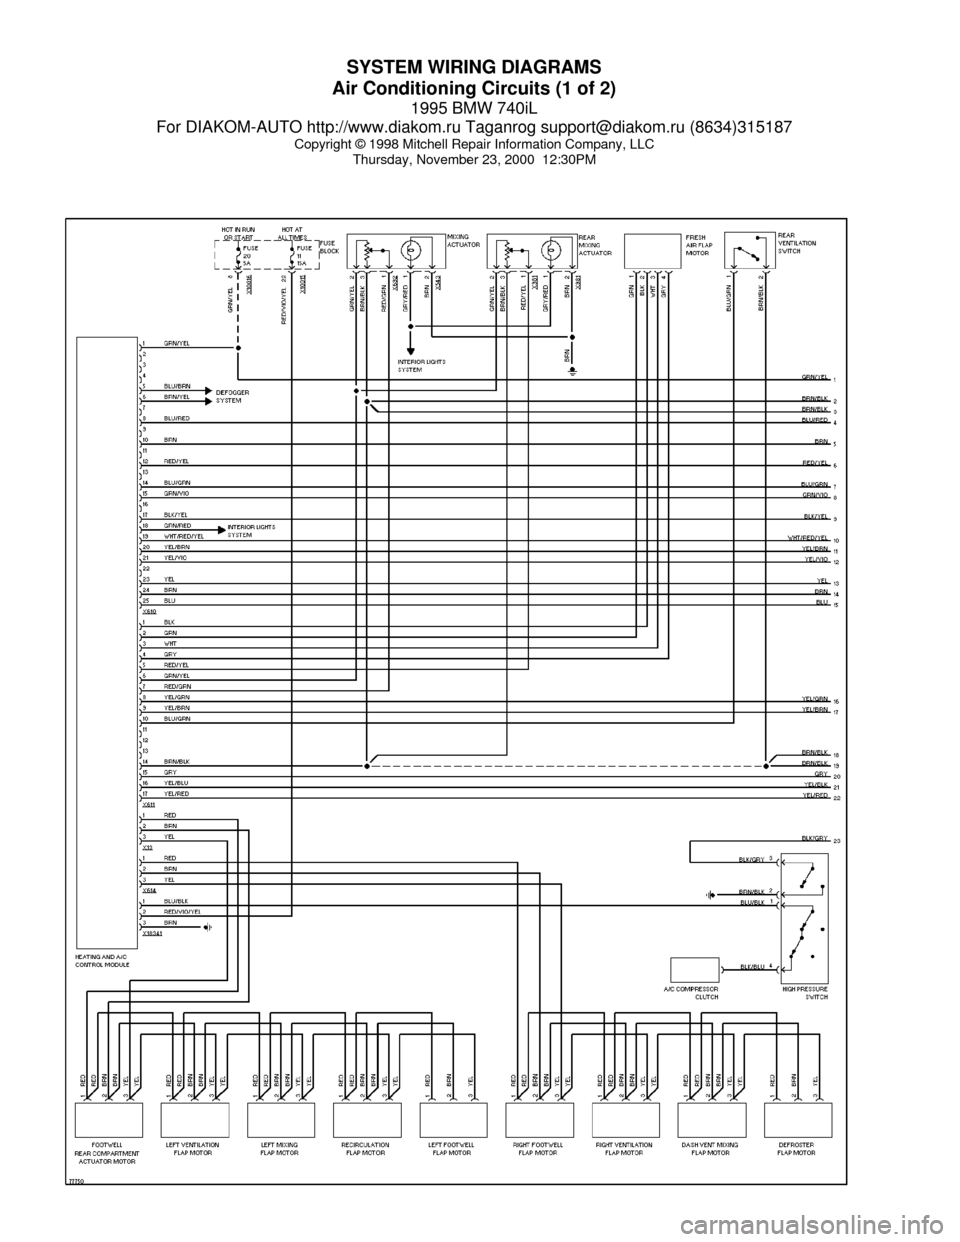 [SCHEMATICS_49CH]  BMW 740il 1995 E38 System Wiring Diagrams (60 Pages) | 1998 Bmw 740i Wiring Diagram |  | Car Manuals Online